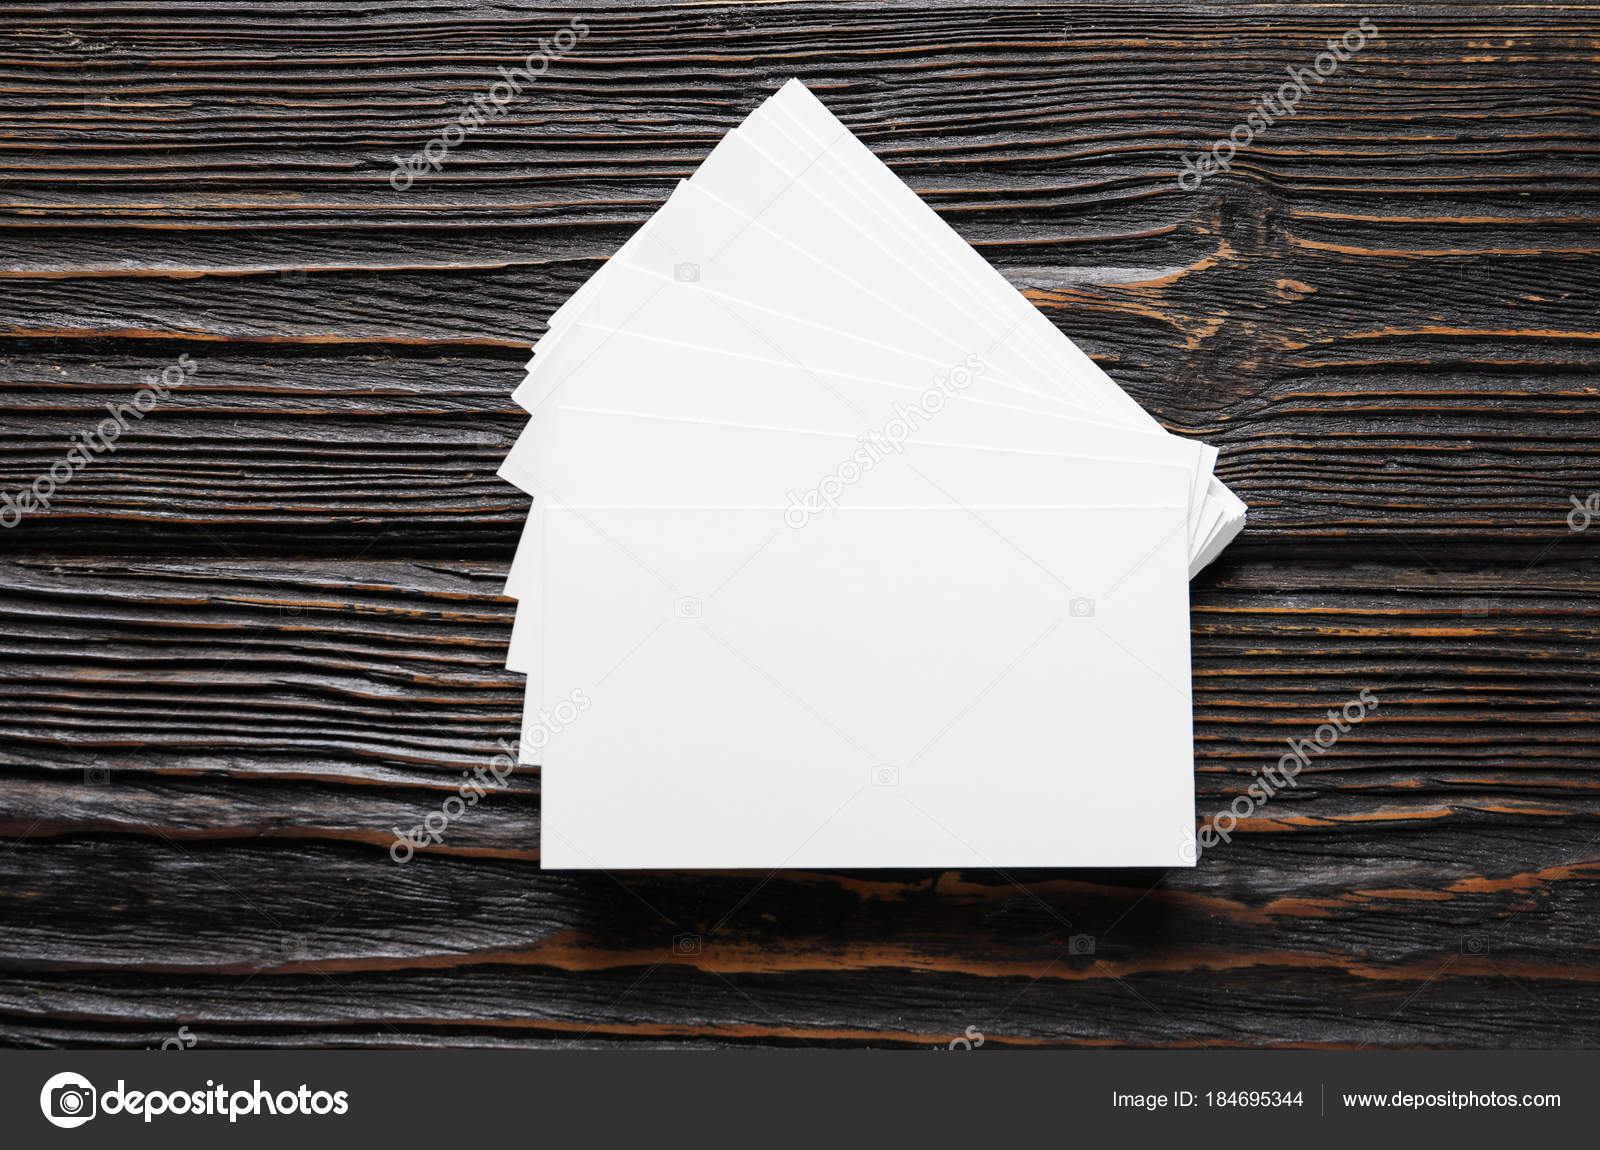 blank business cards on wooden background stock photo belchonock